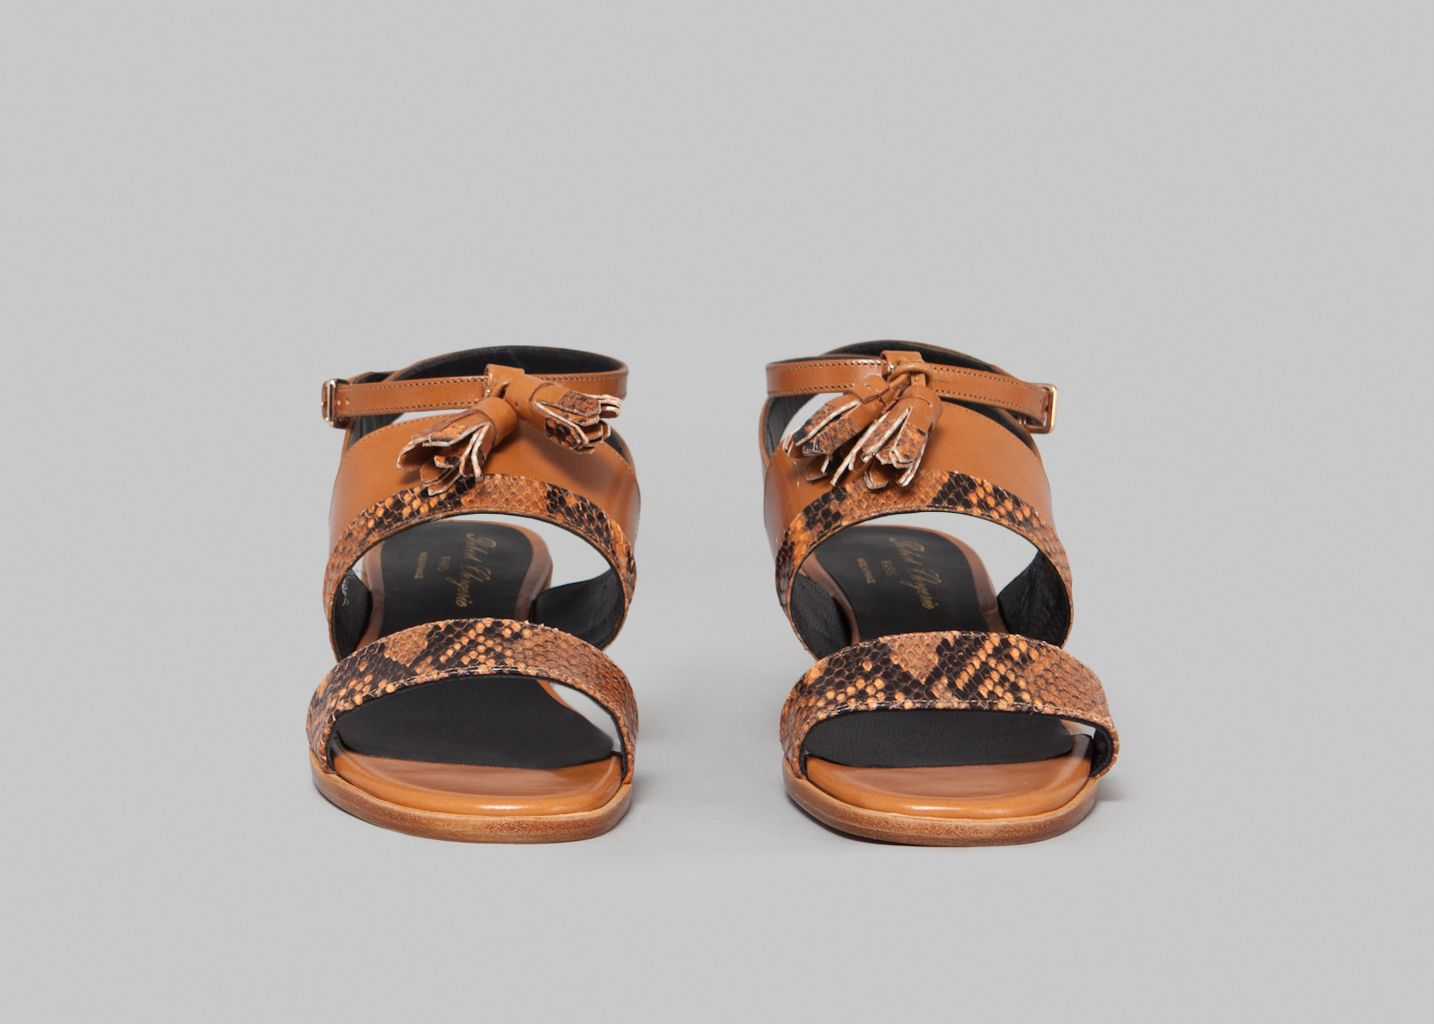 Robert Clergerie Shoes Reviews